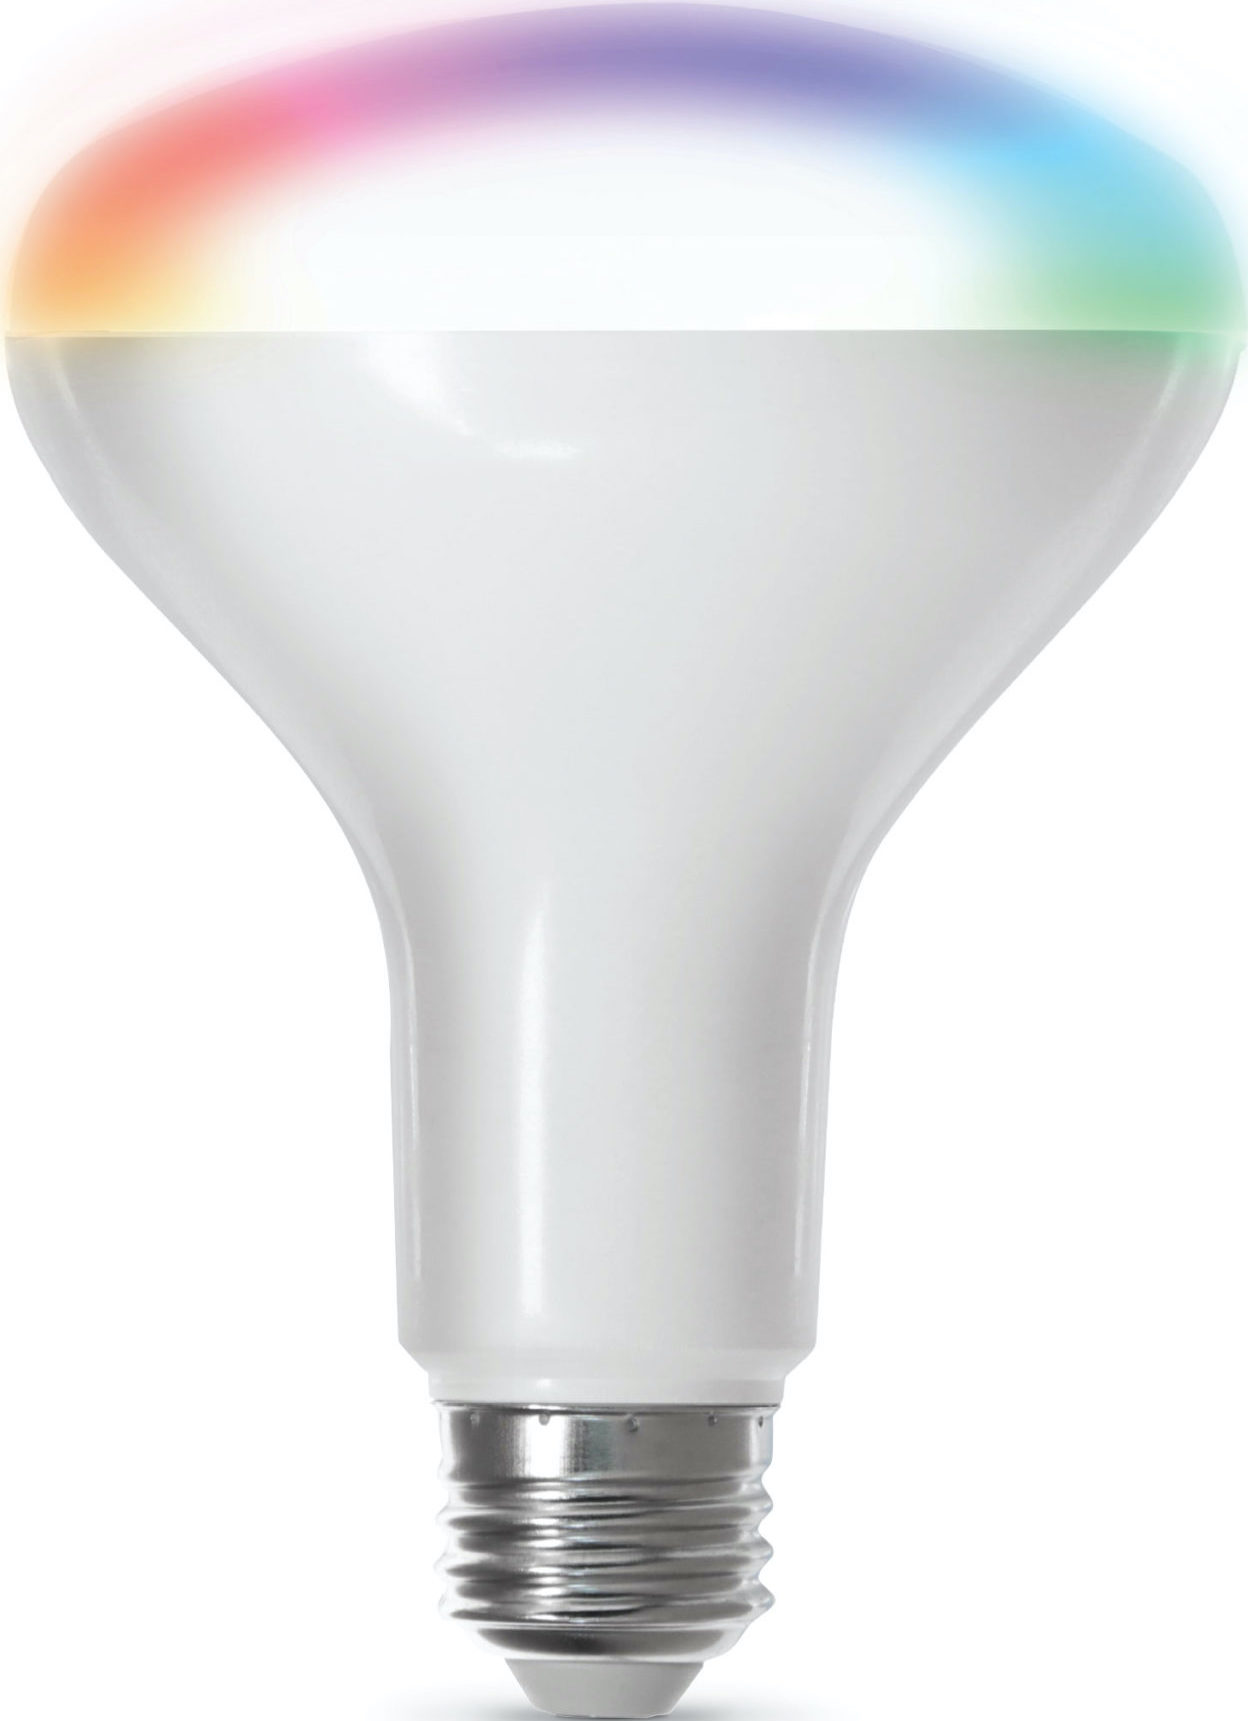 Feit Electric Br30 Multicolor Smart Light Bulb